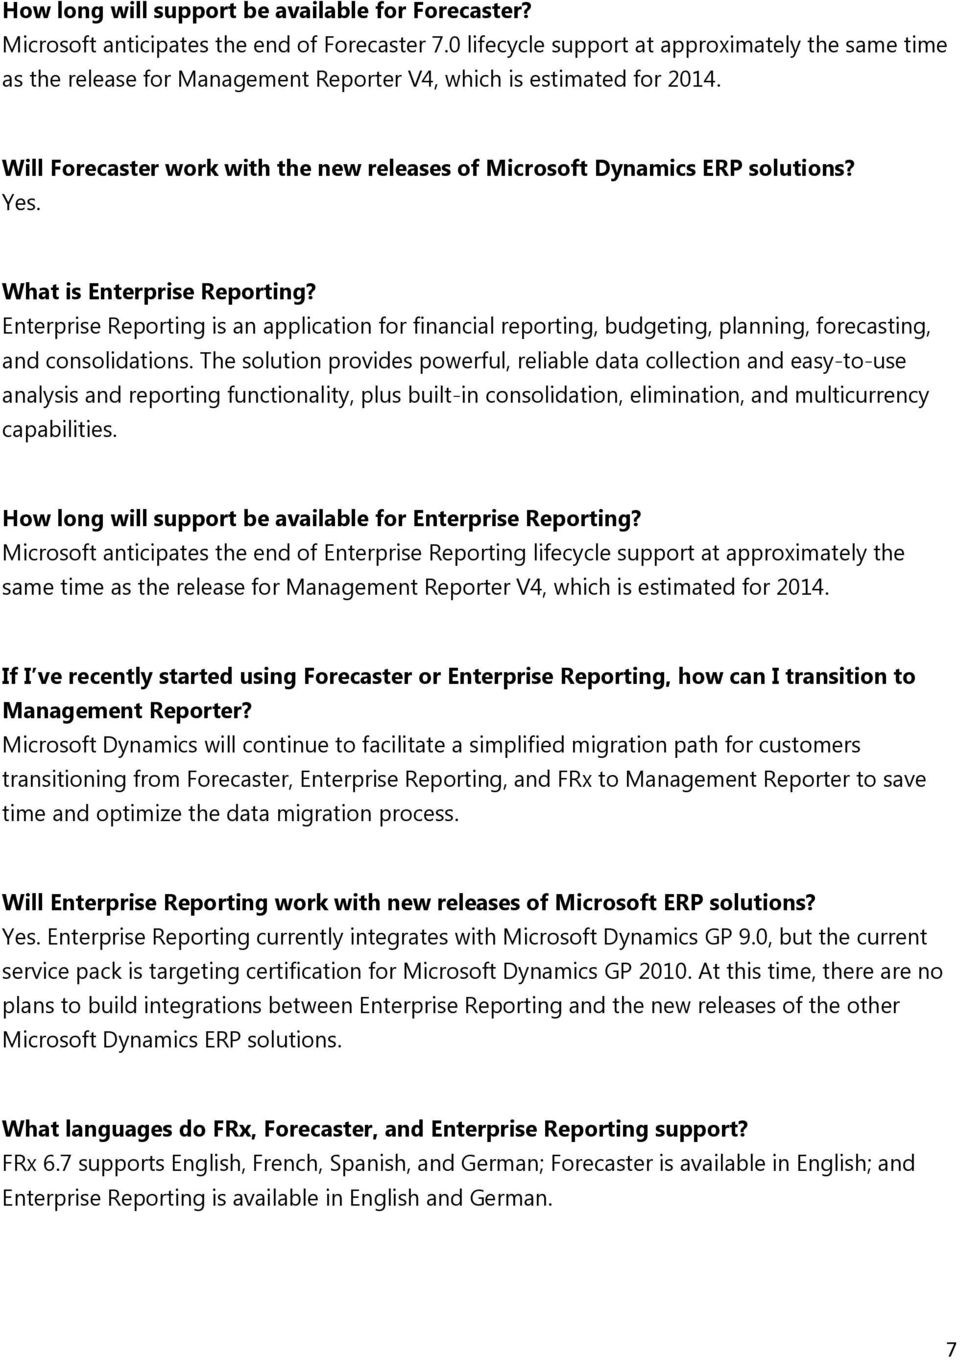 Will Forecaster work with the new releases of Microsoft Dynamics ERP solutions? Yes. What is Enterprise Reporting?